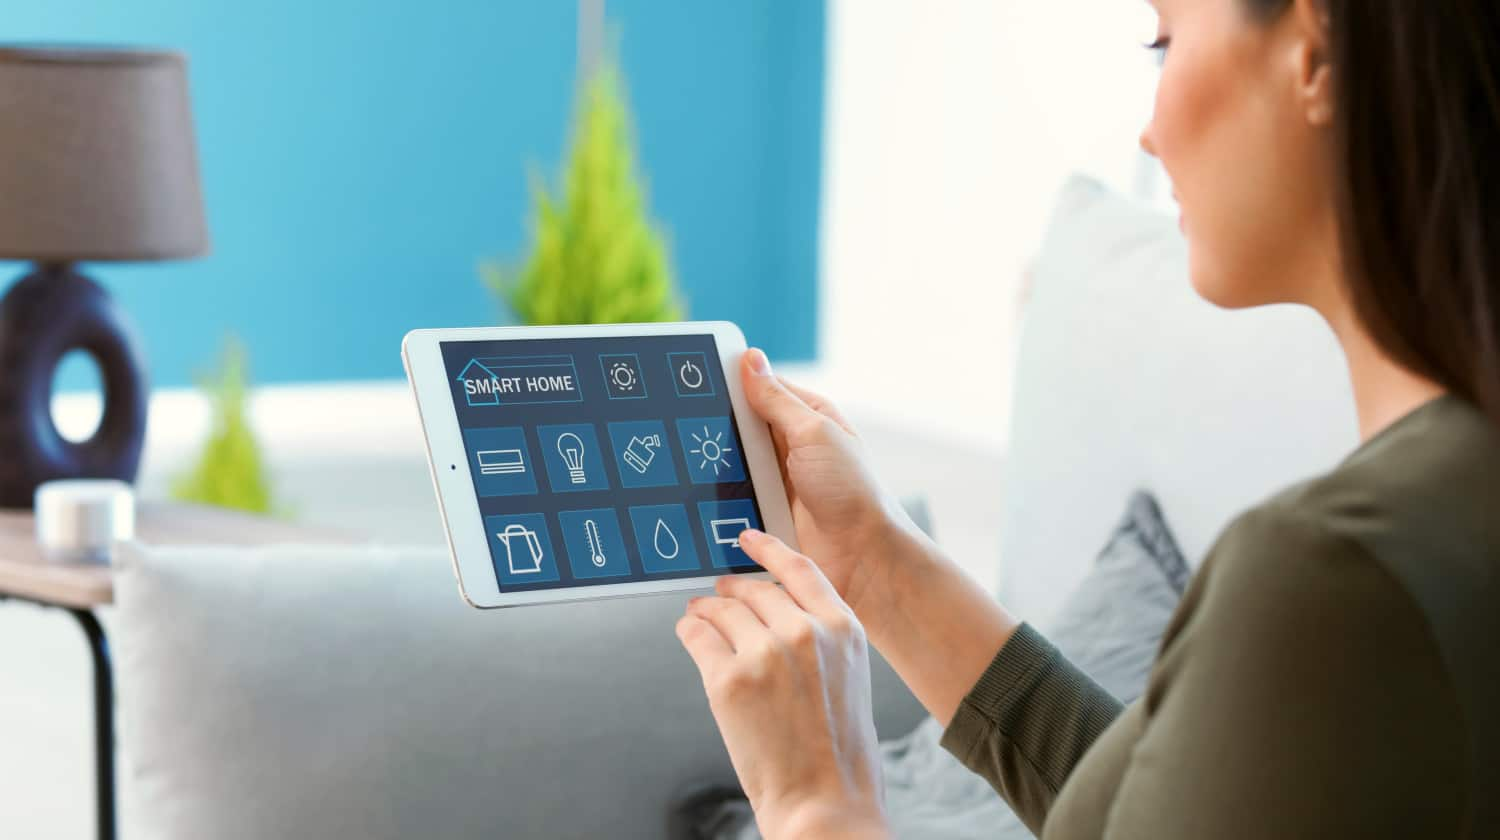 A couple sitting on the sofa controls all the functions | DIY Smart Home Automation Guide: Best Smart Devices From Amazon | diy smart home security | Featured